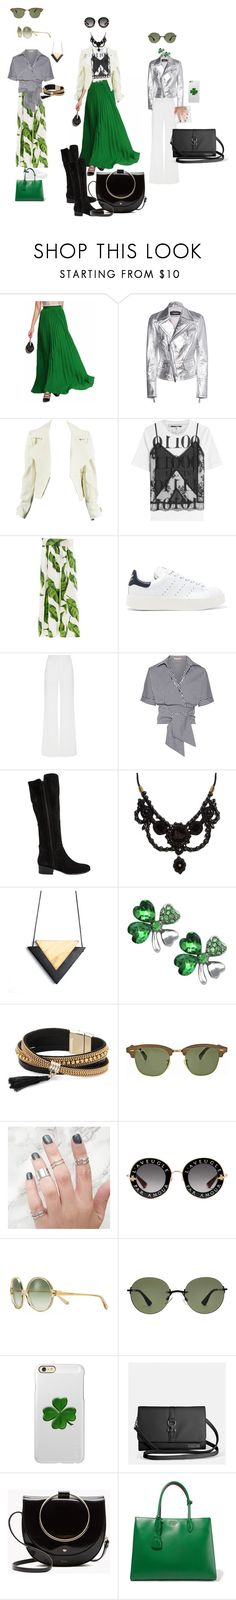 """""""Sem título #3"""" by danidz on Polyvore featuring moda, Dsquared2, McQ by Alexander McQueen, adidas Originals, Alexis Mabille, Michael Kors, Steve Madden, Gucci, Simons e Ray-Ban"""